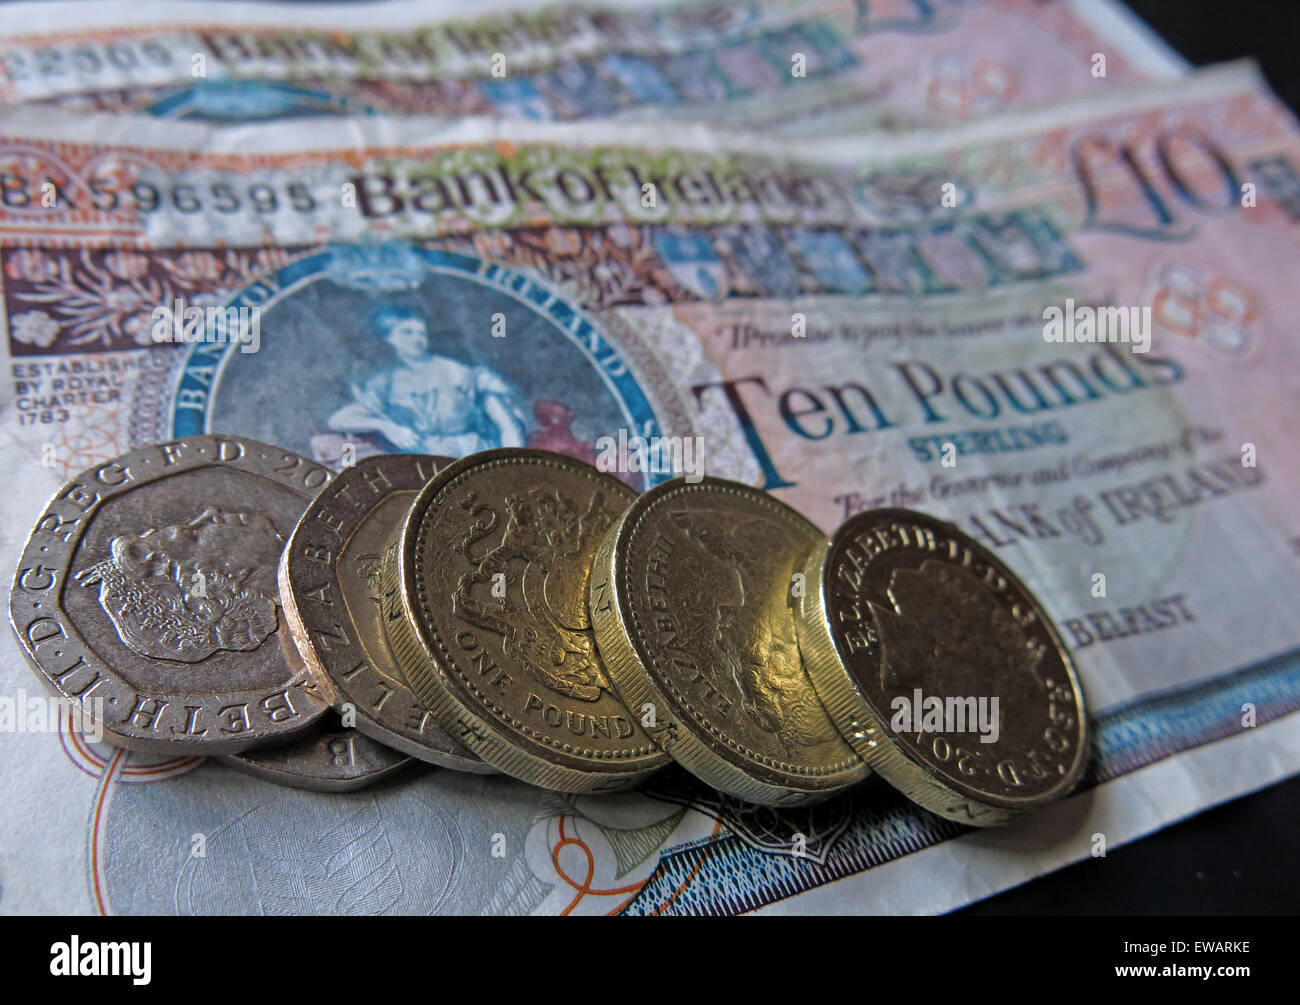 Northern Irish £5, £10 notes and pound coins, legal tender from the Bank Of Ireland  Belfast - Stock Image